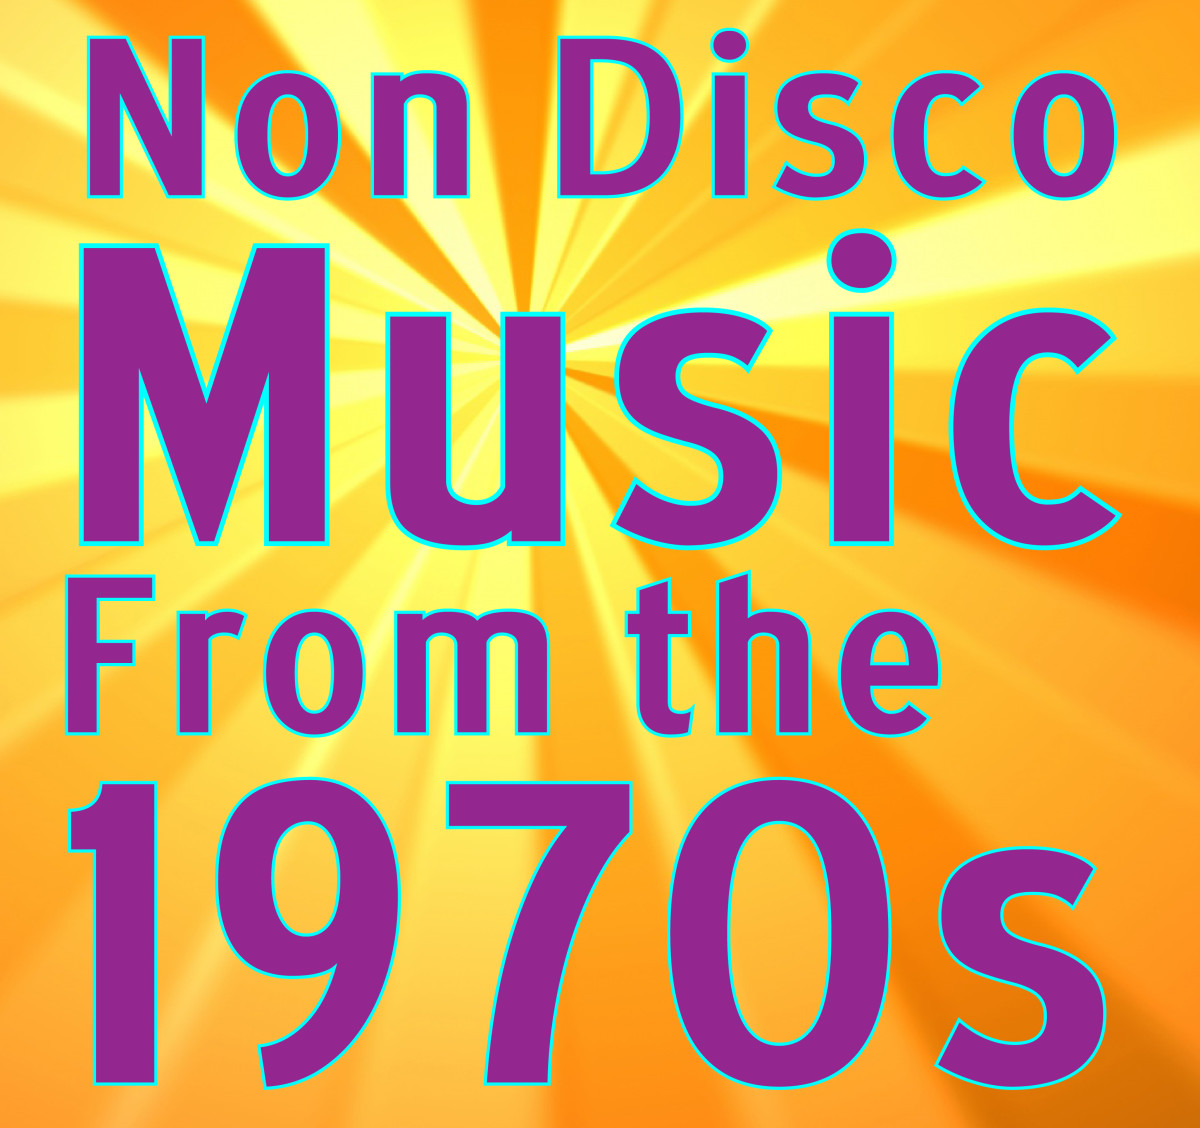 Non-Disco Music From the 1970s